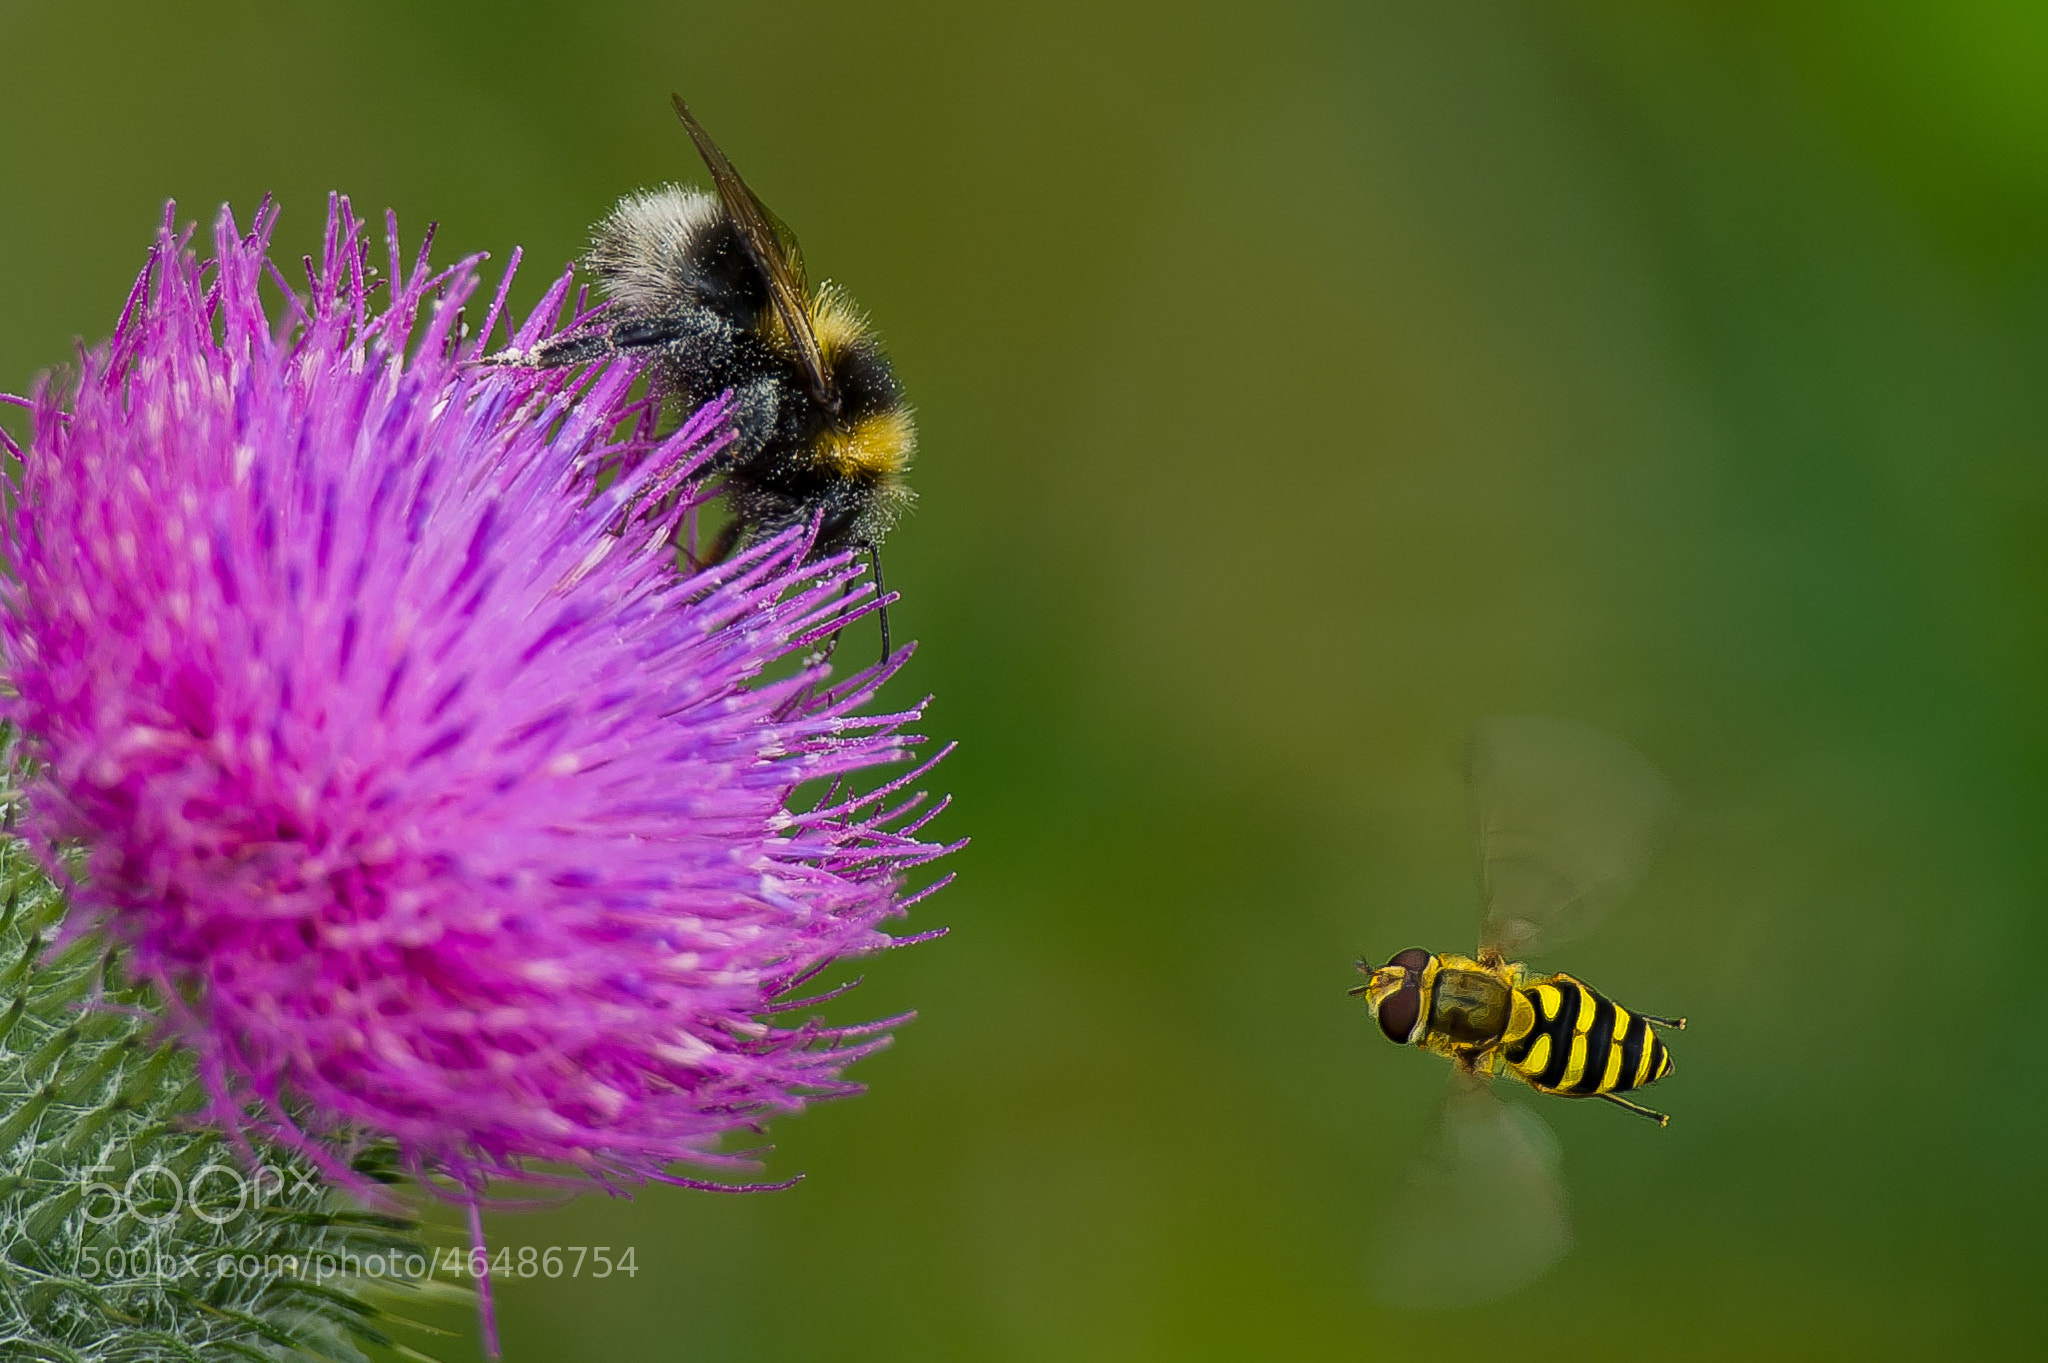 Photograph The bee and the bumblebee in focus by Jørn Allan Pedersen on 500px